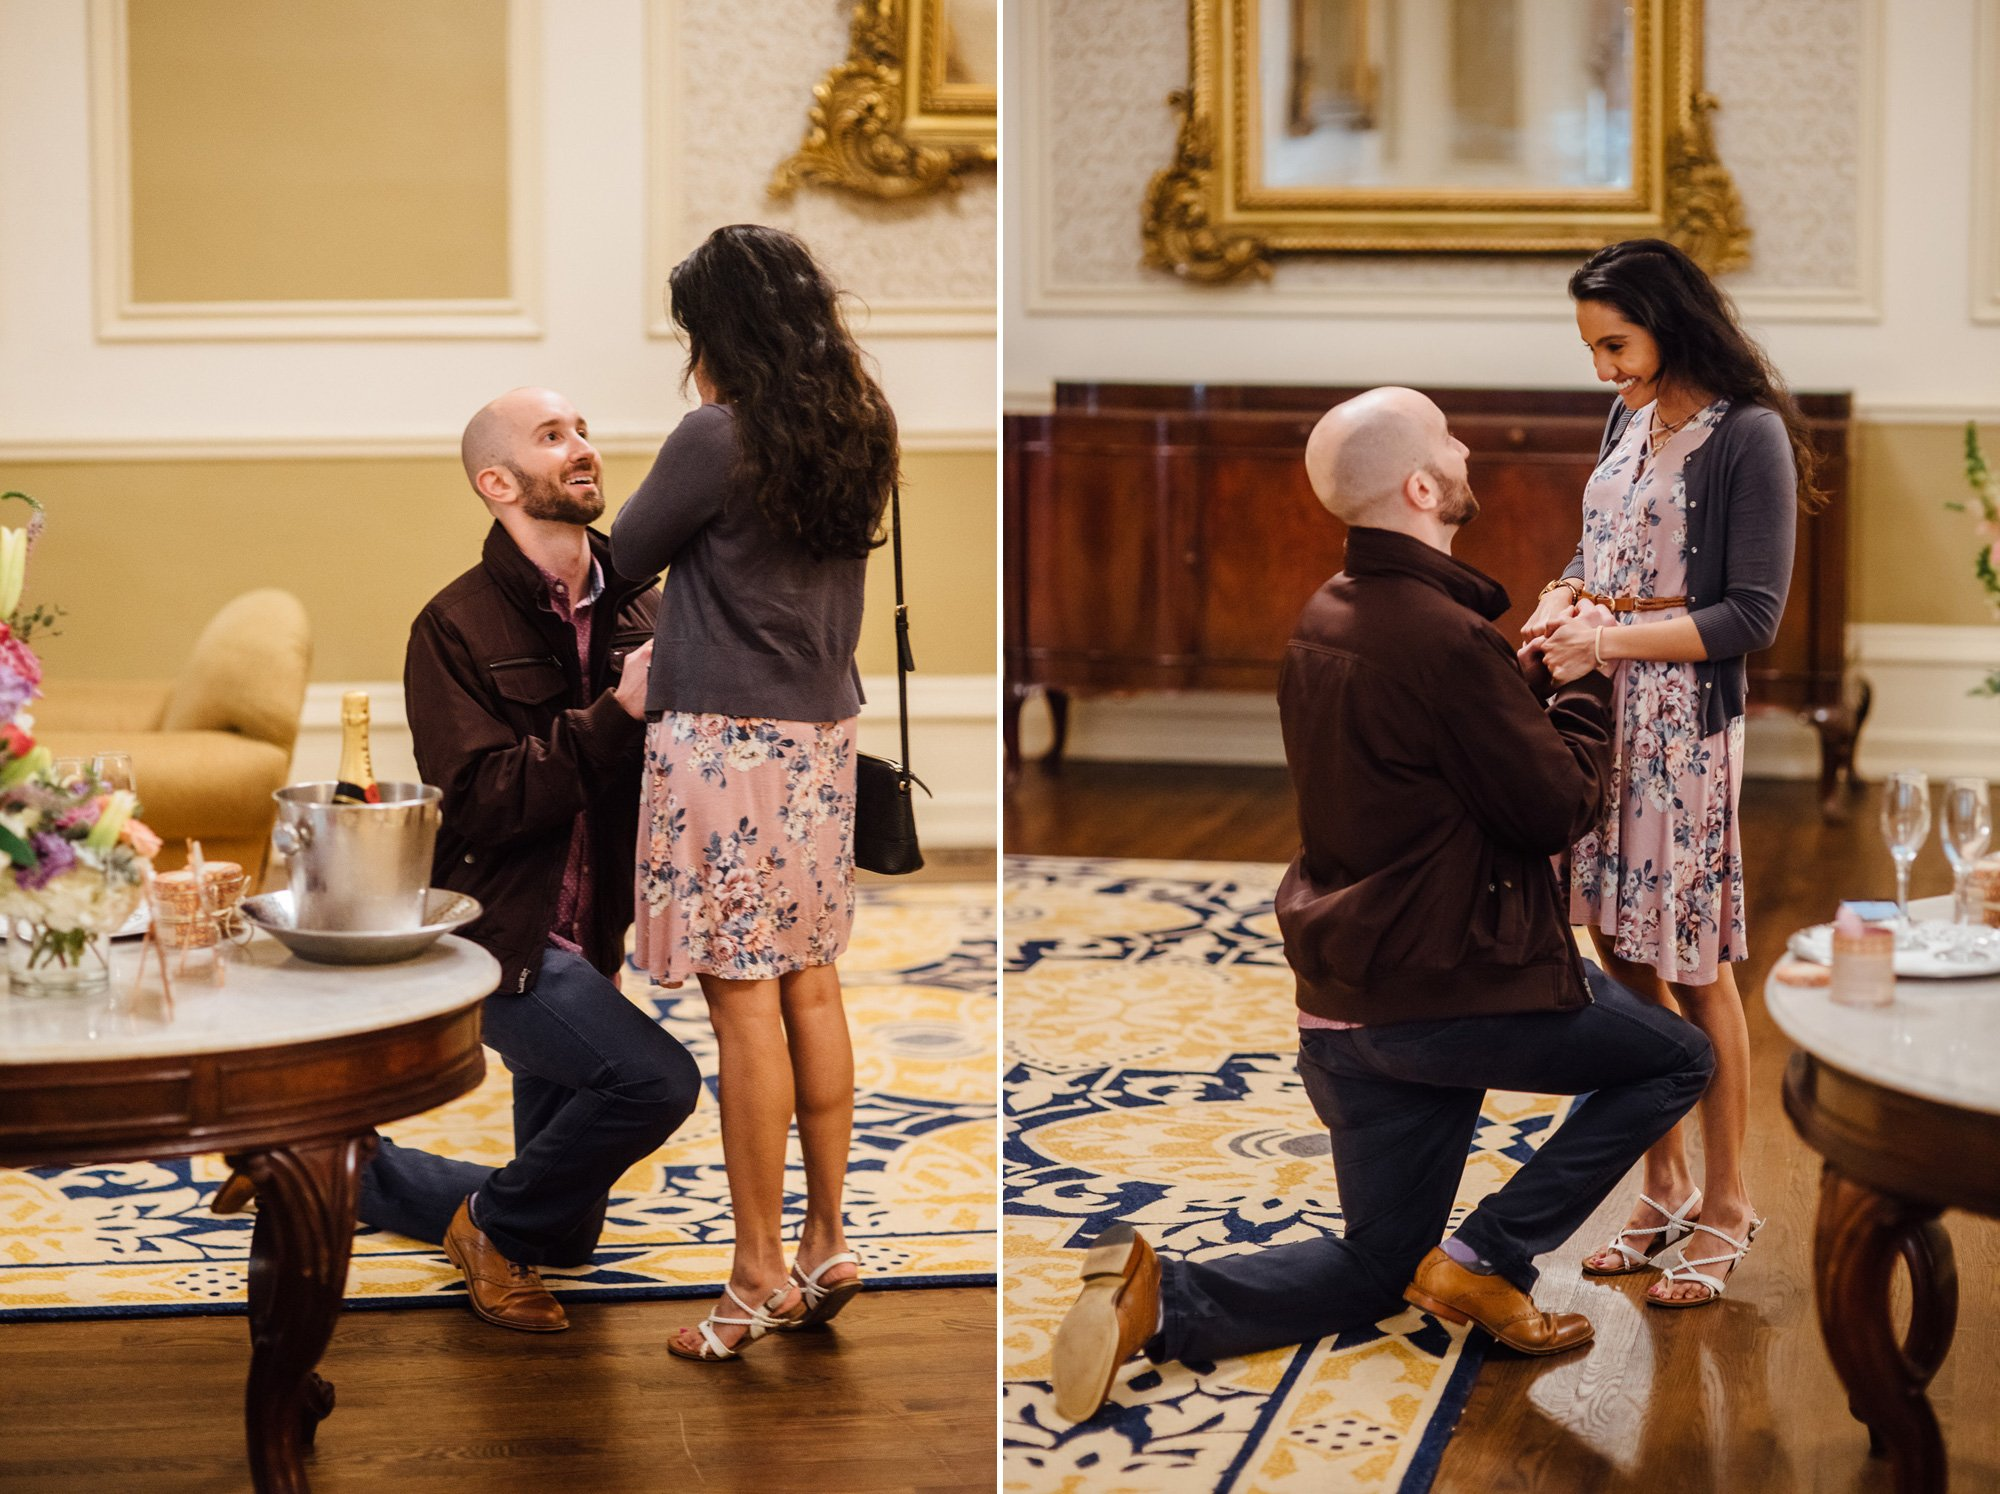 driskill hotel proposal, austin surprise proposal, austin proposal photographer, austin proposal photography